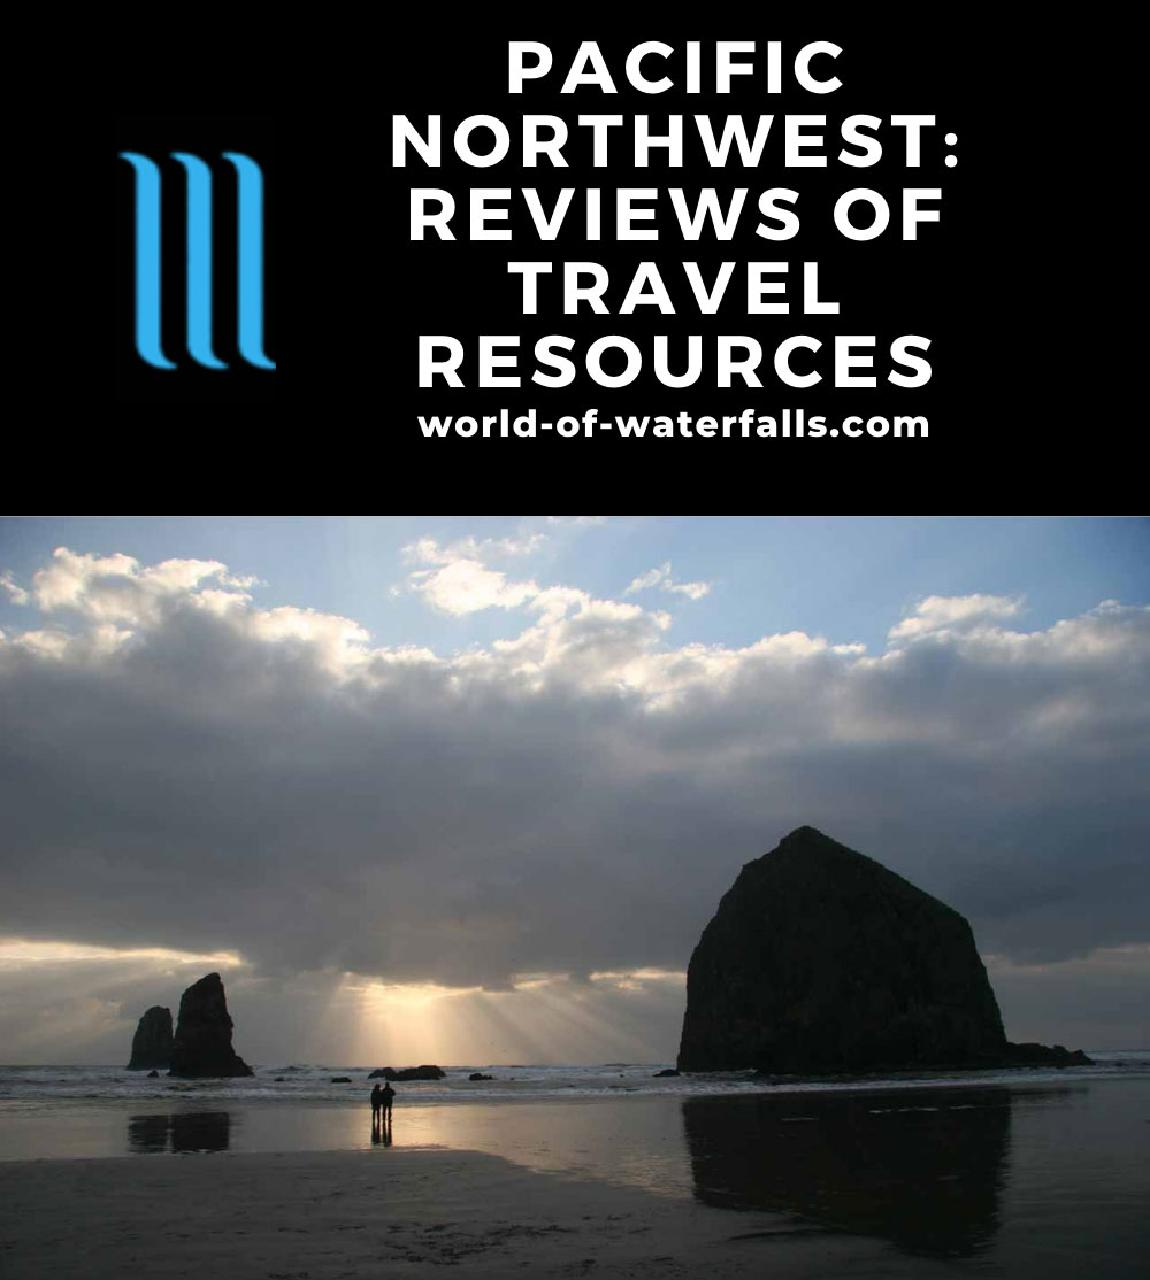 Pacific Northwest: Reviews of Travel Resources